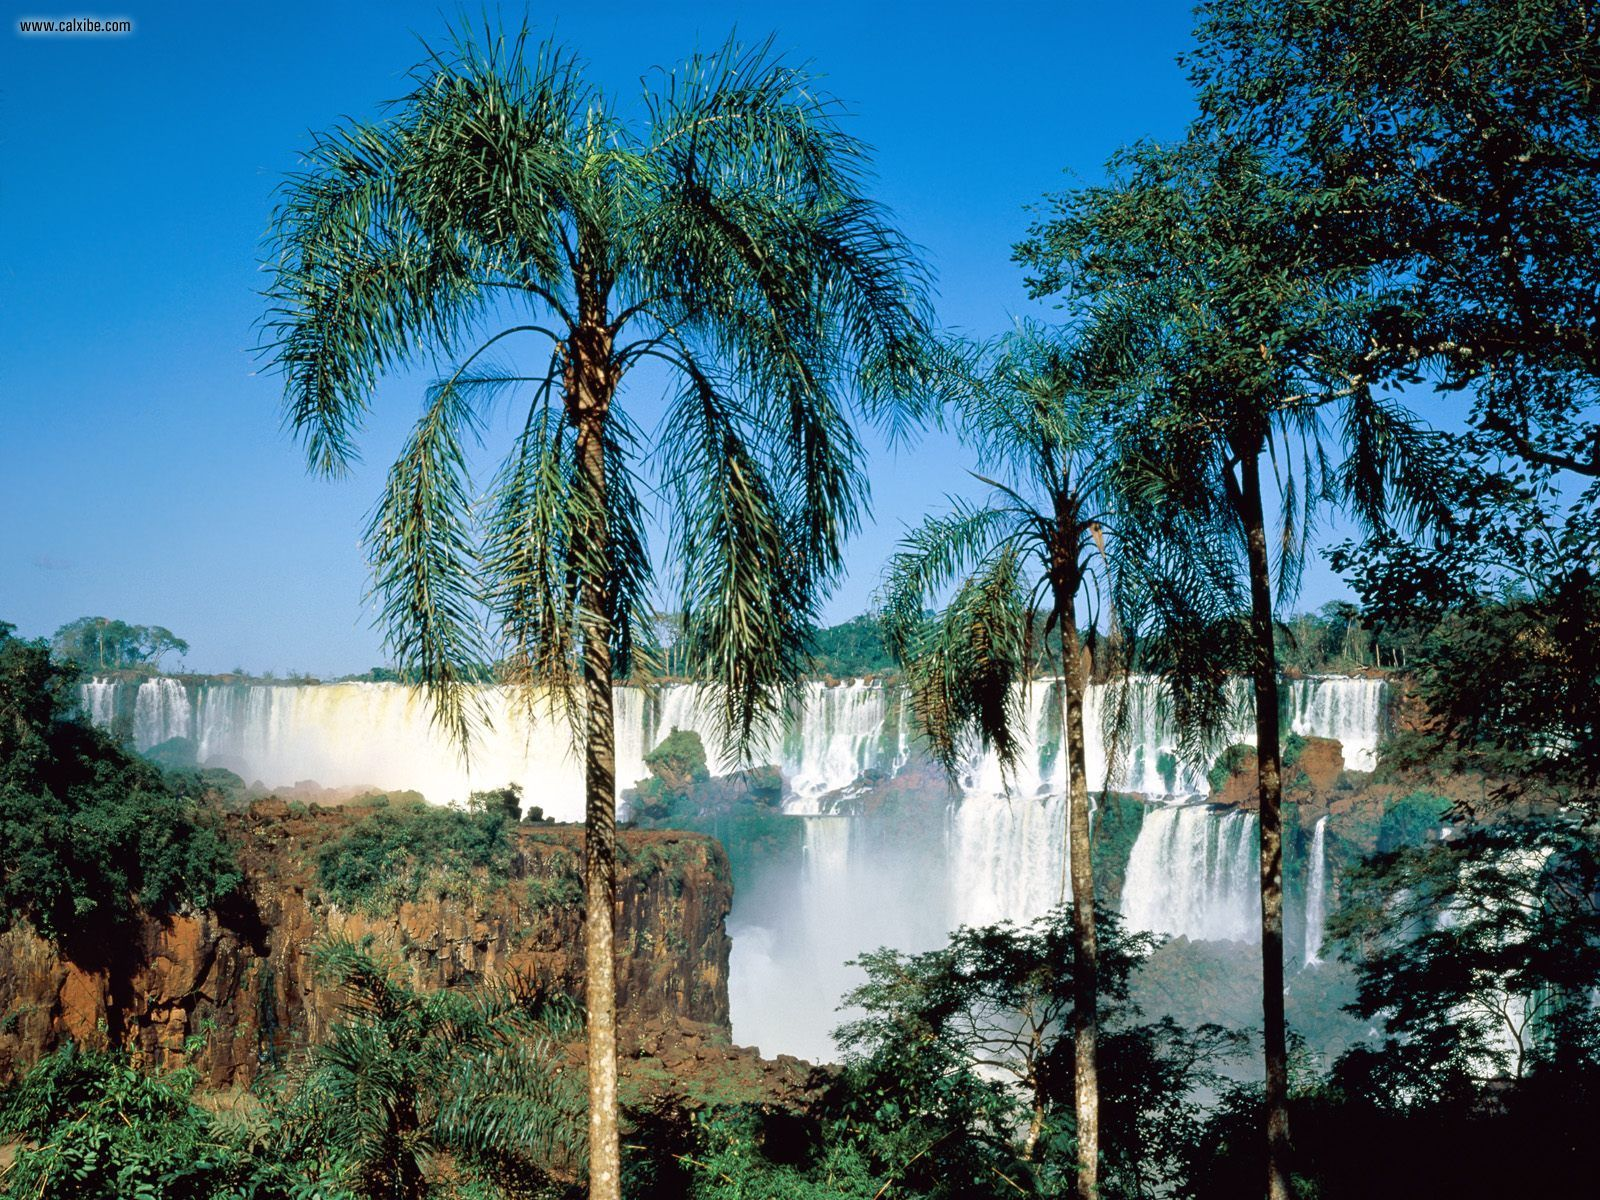 Iguazul Falls Wallpaper Top Wallpapers Images Most Amazing Waterfalls Wallpapers